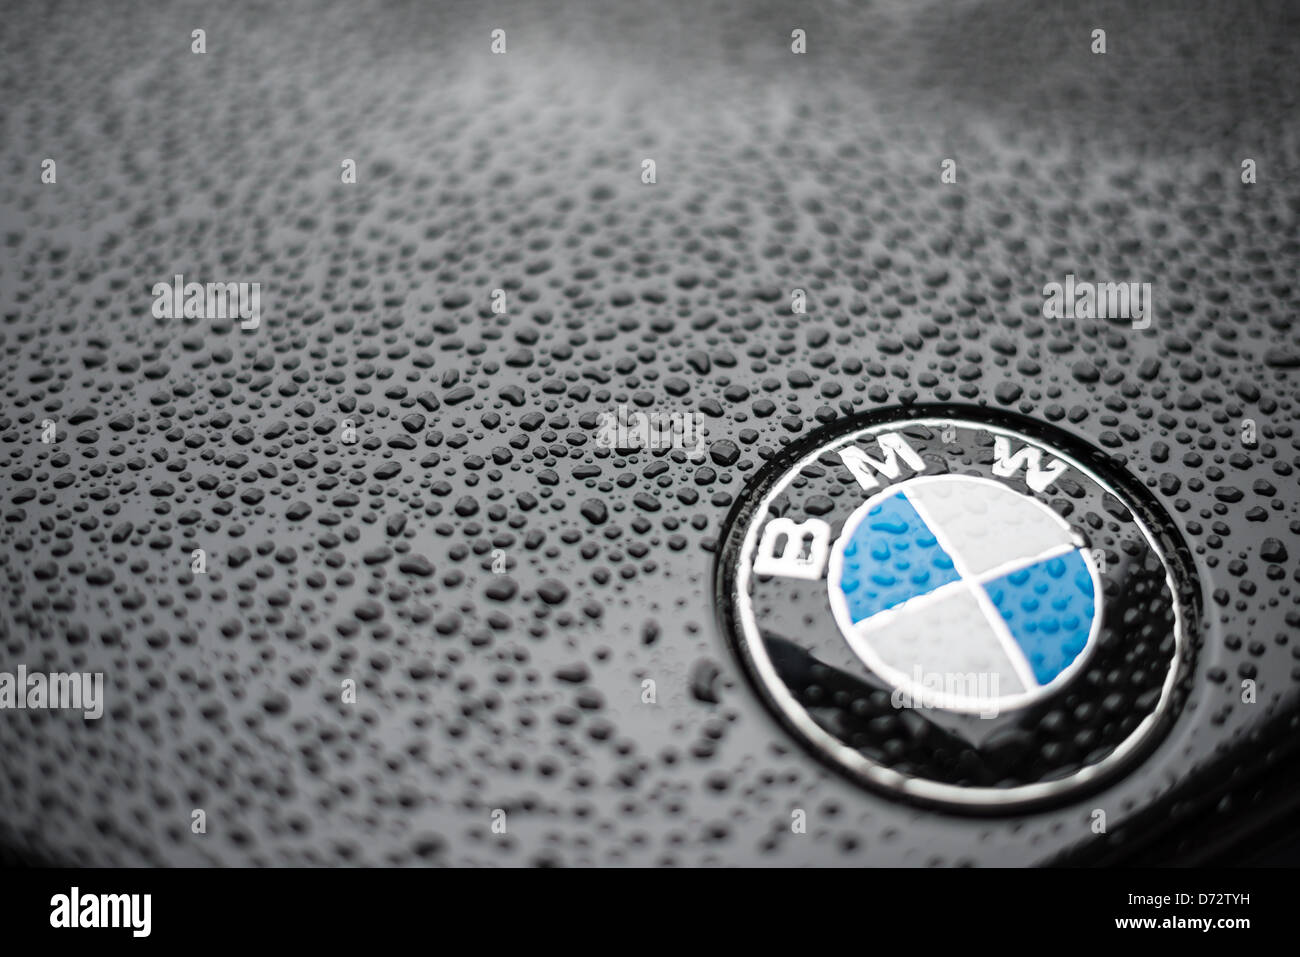 Close-up shot of a BMW badge on the hood of a black BMW car, with water droplets forming from rain. Shallow depth - Stock Image